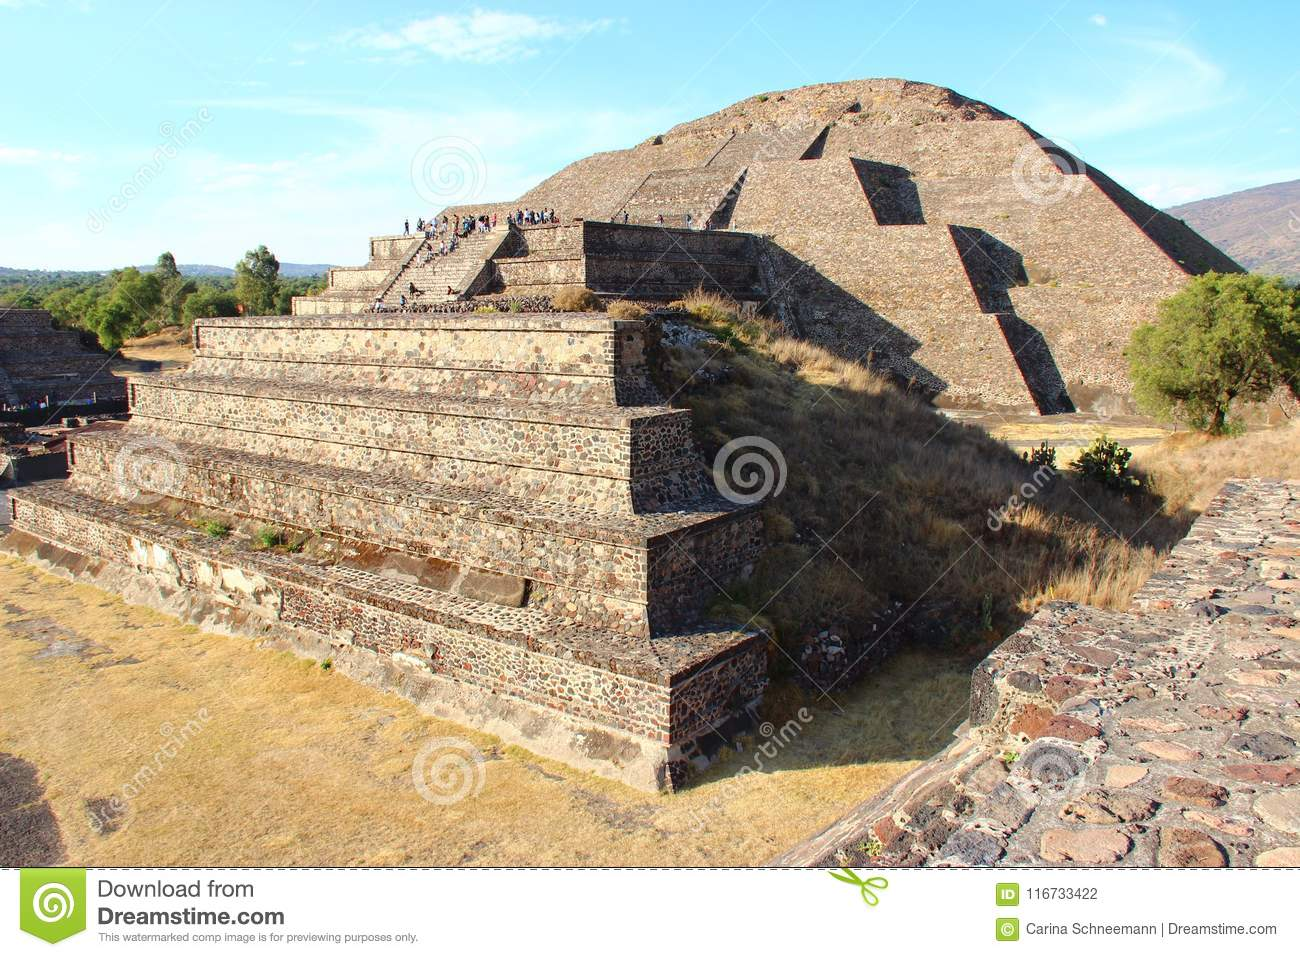 Teotihuacan - aztec pyramid in Mexico